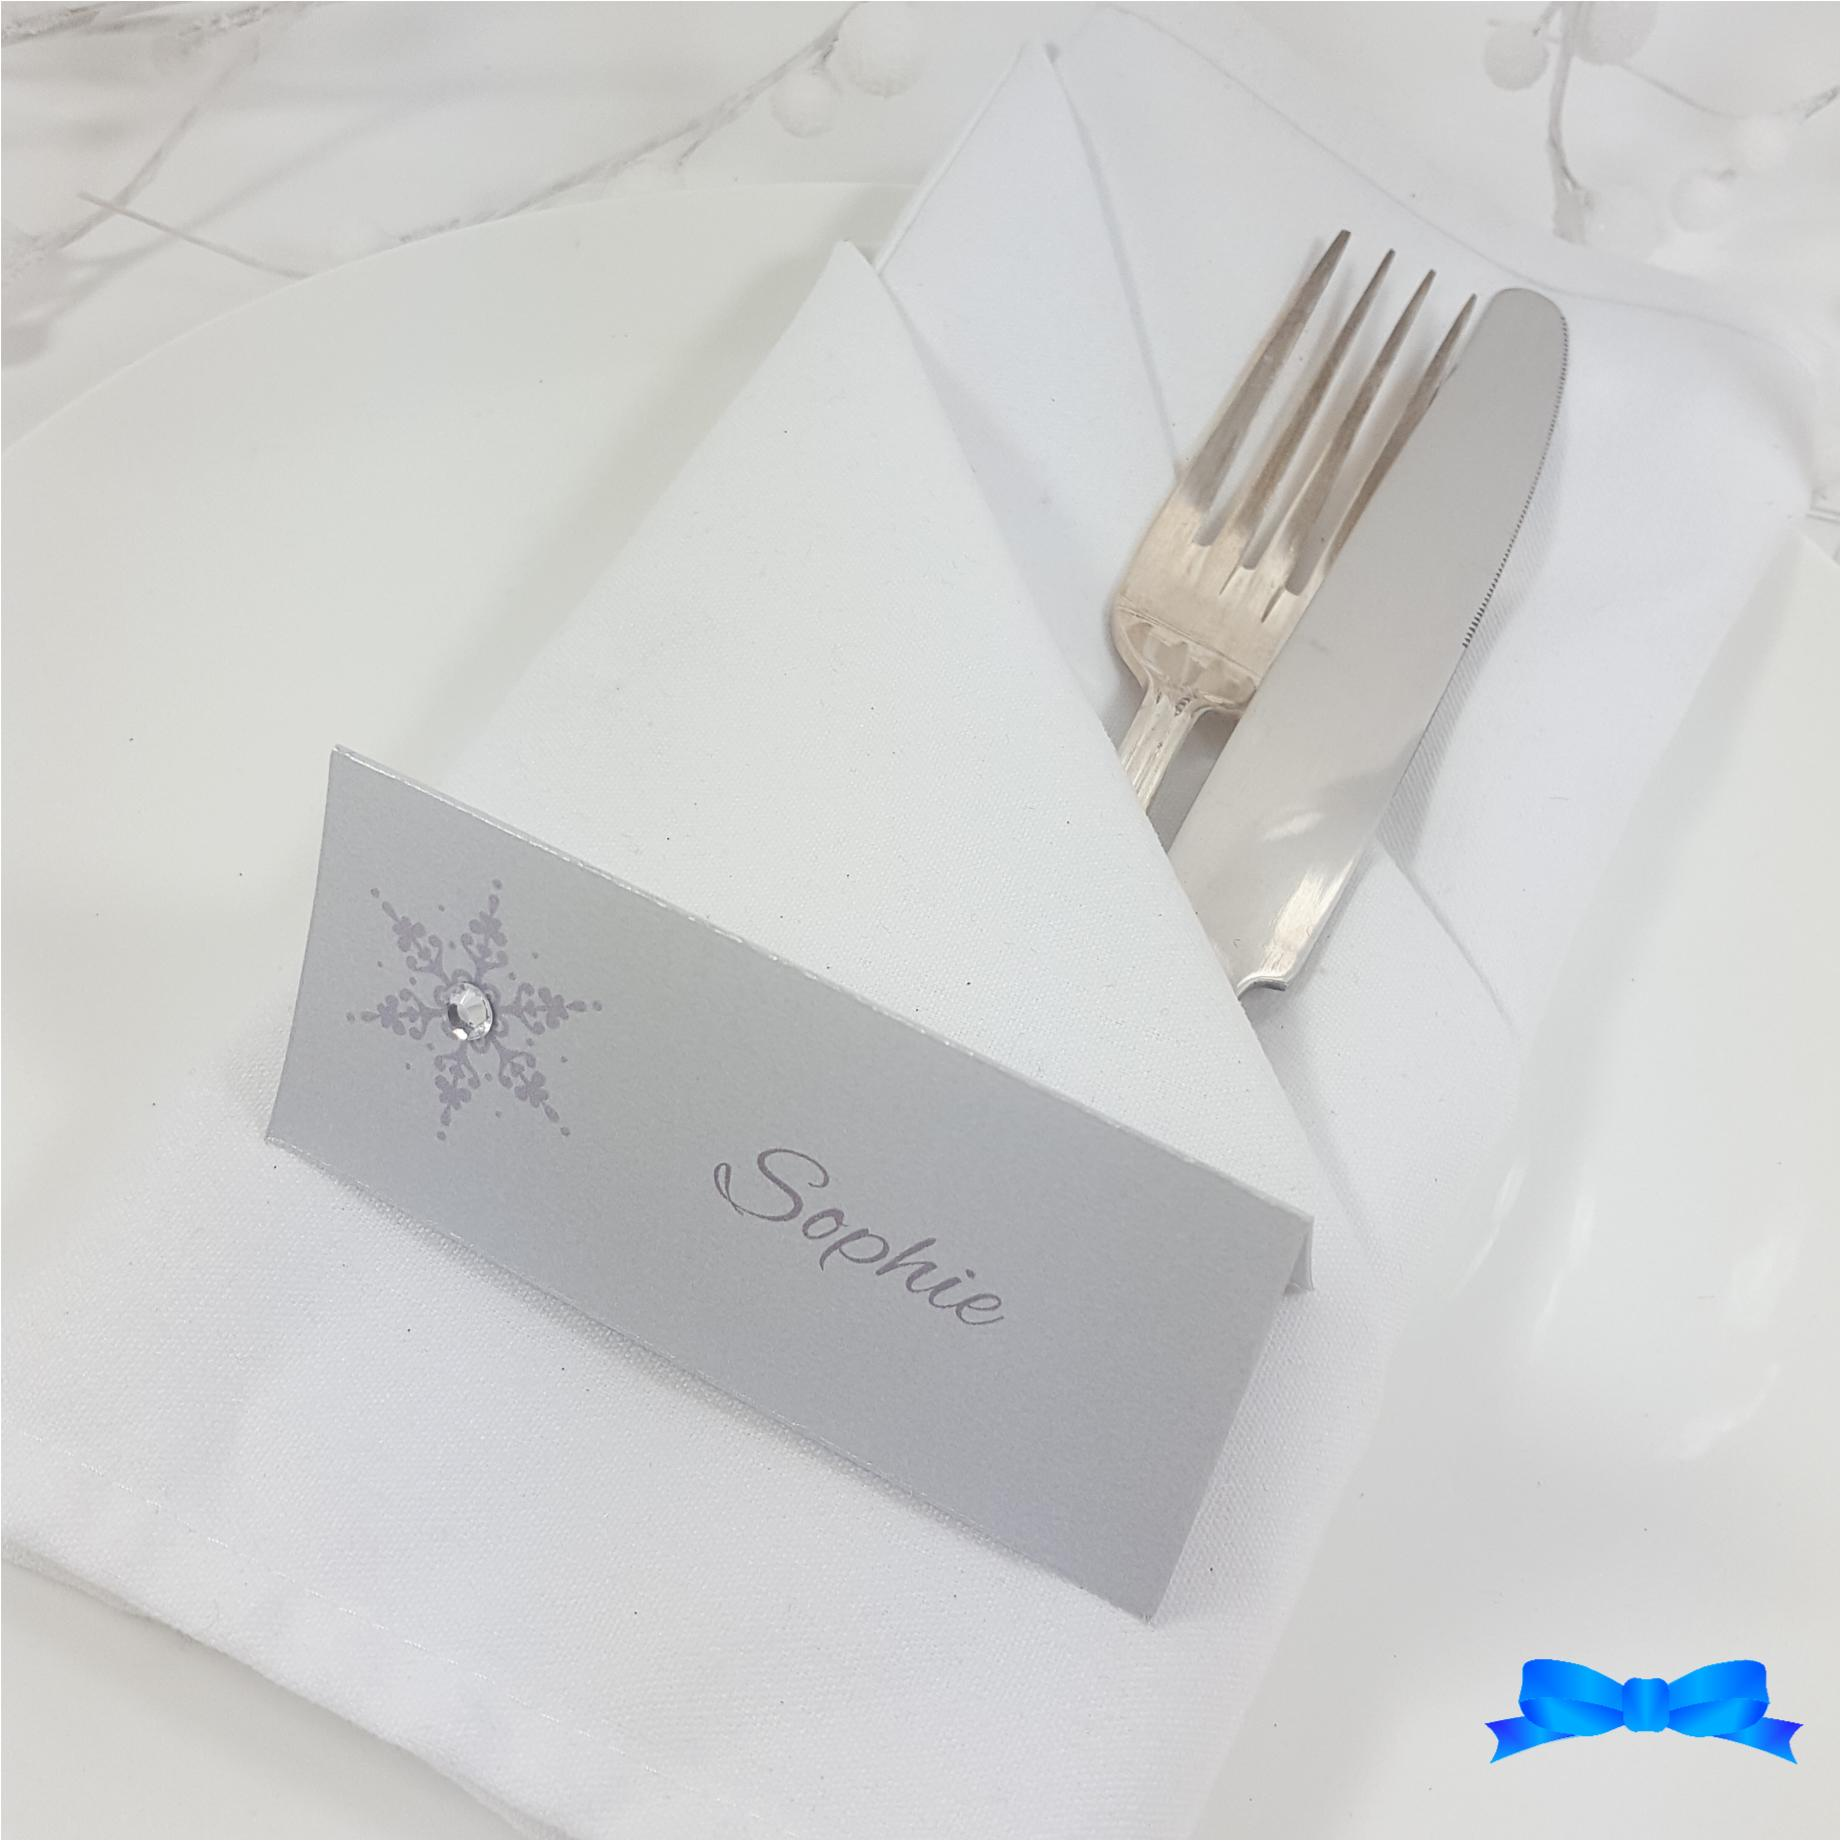 Silver Snowflake printed place card with diamante